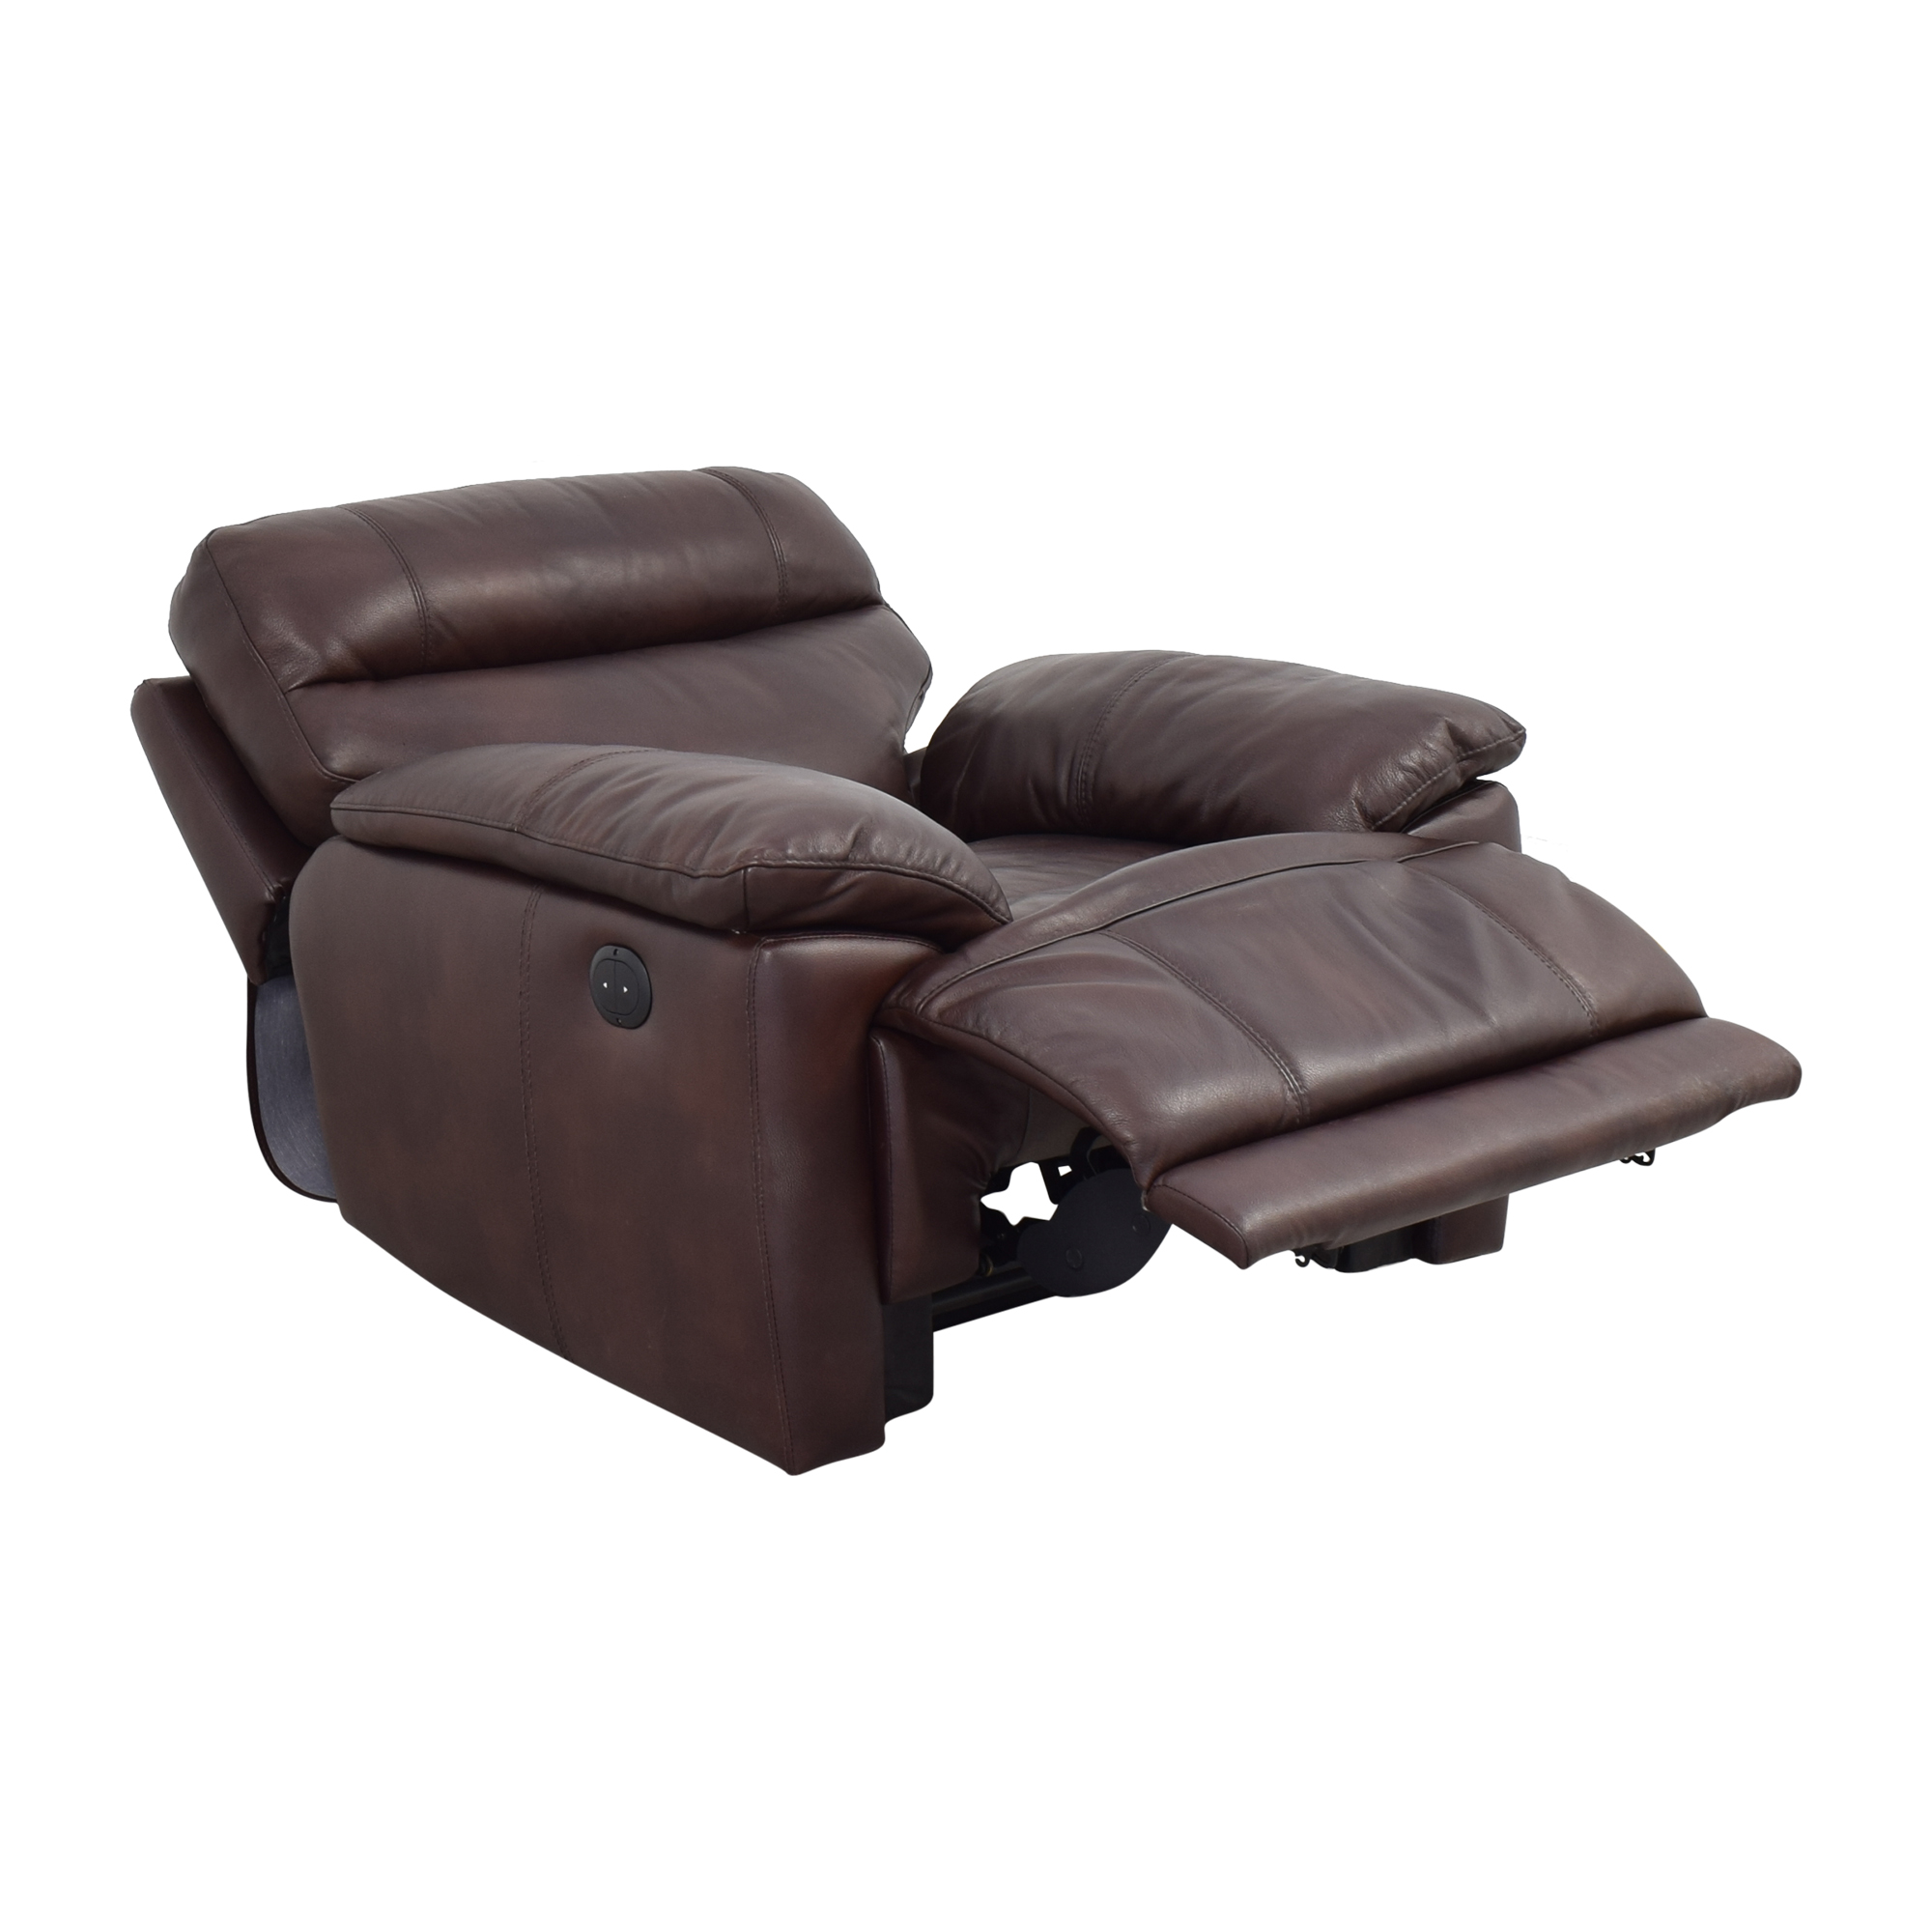 Raymour & Flanigan Raymour & Flanigan Power Recliner discount